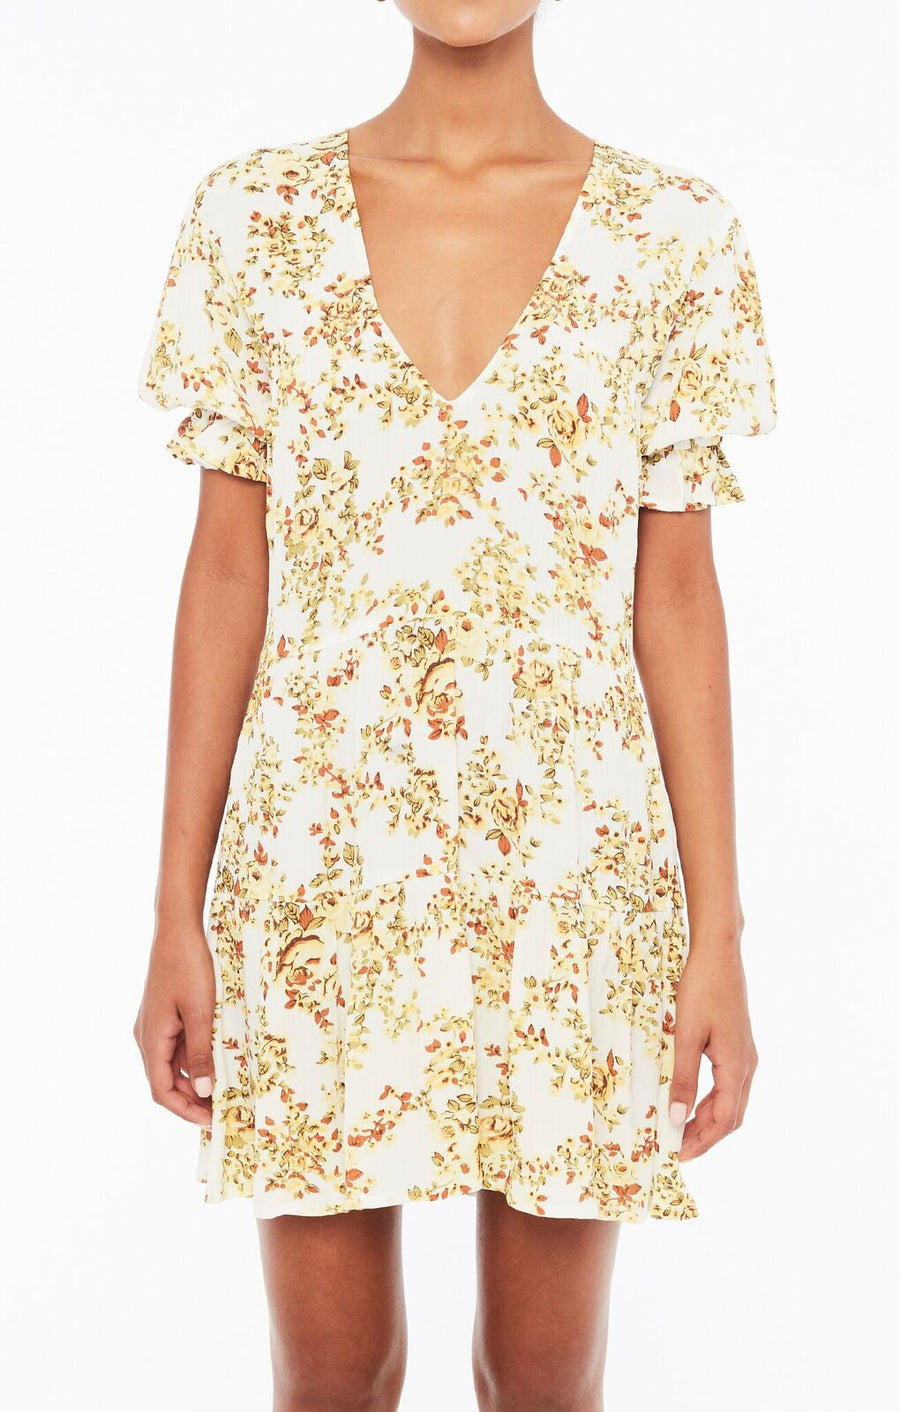 FAITHFULL THE BRAND - ANNA DRESS - GOLDIE FLORAL